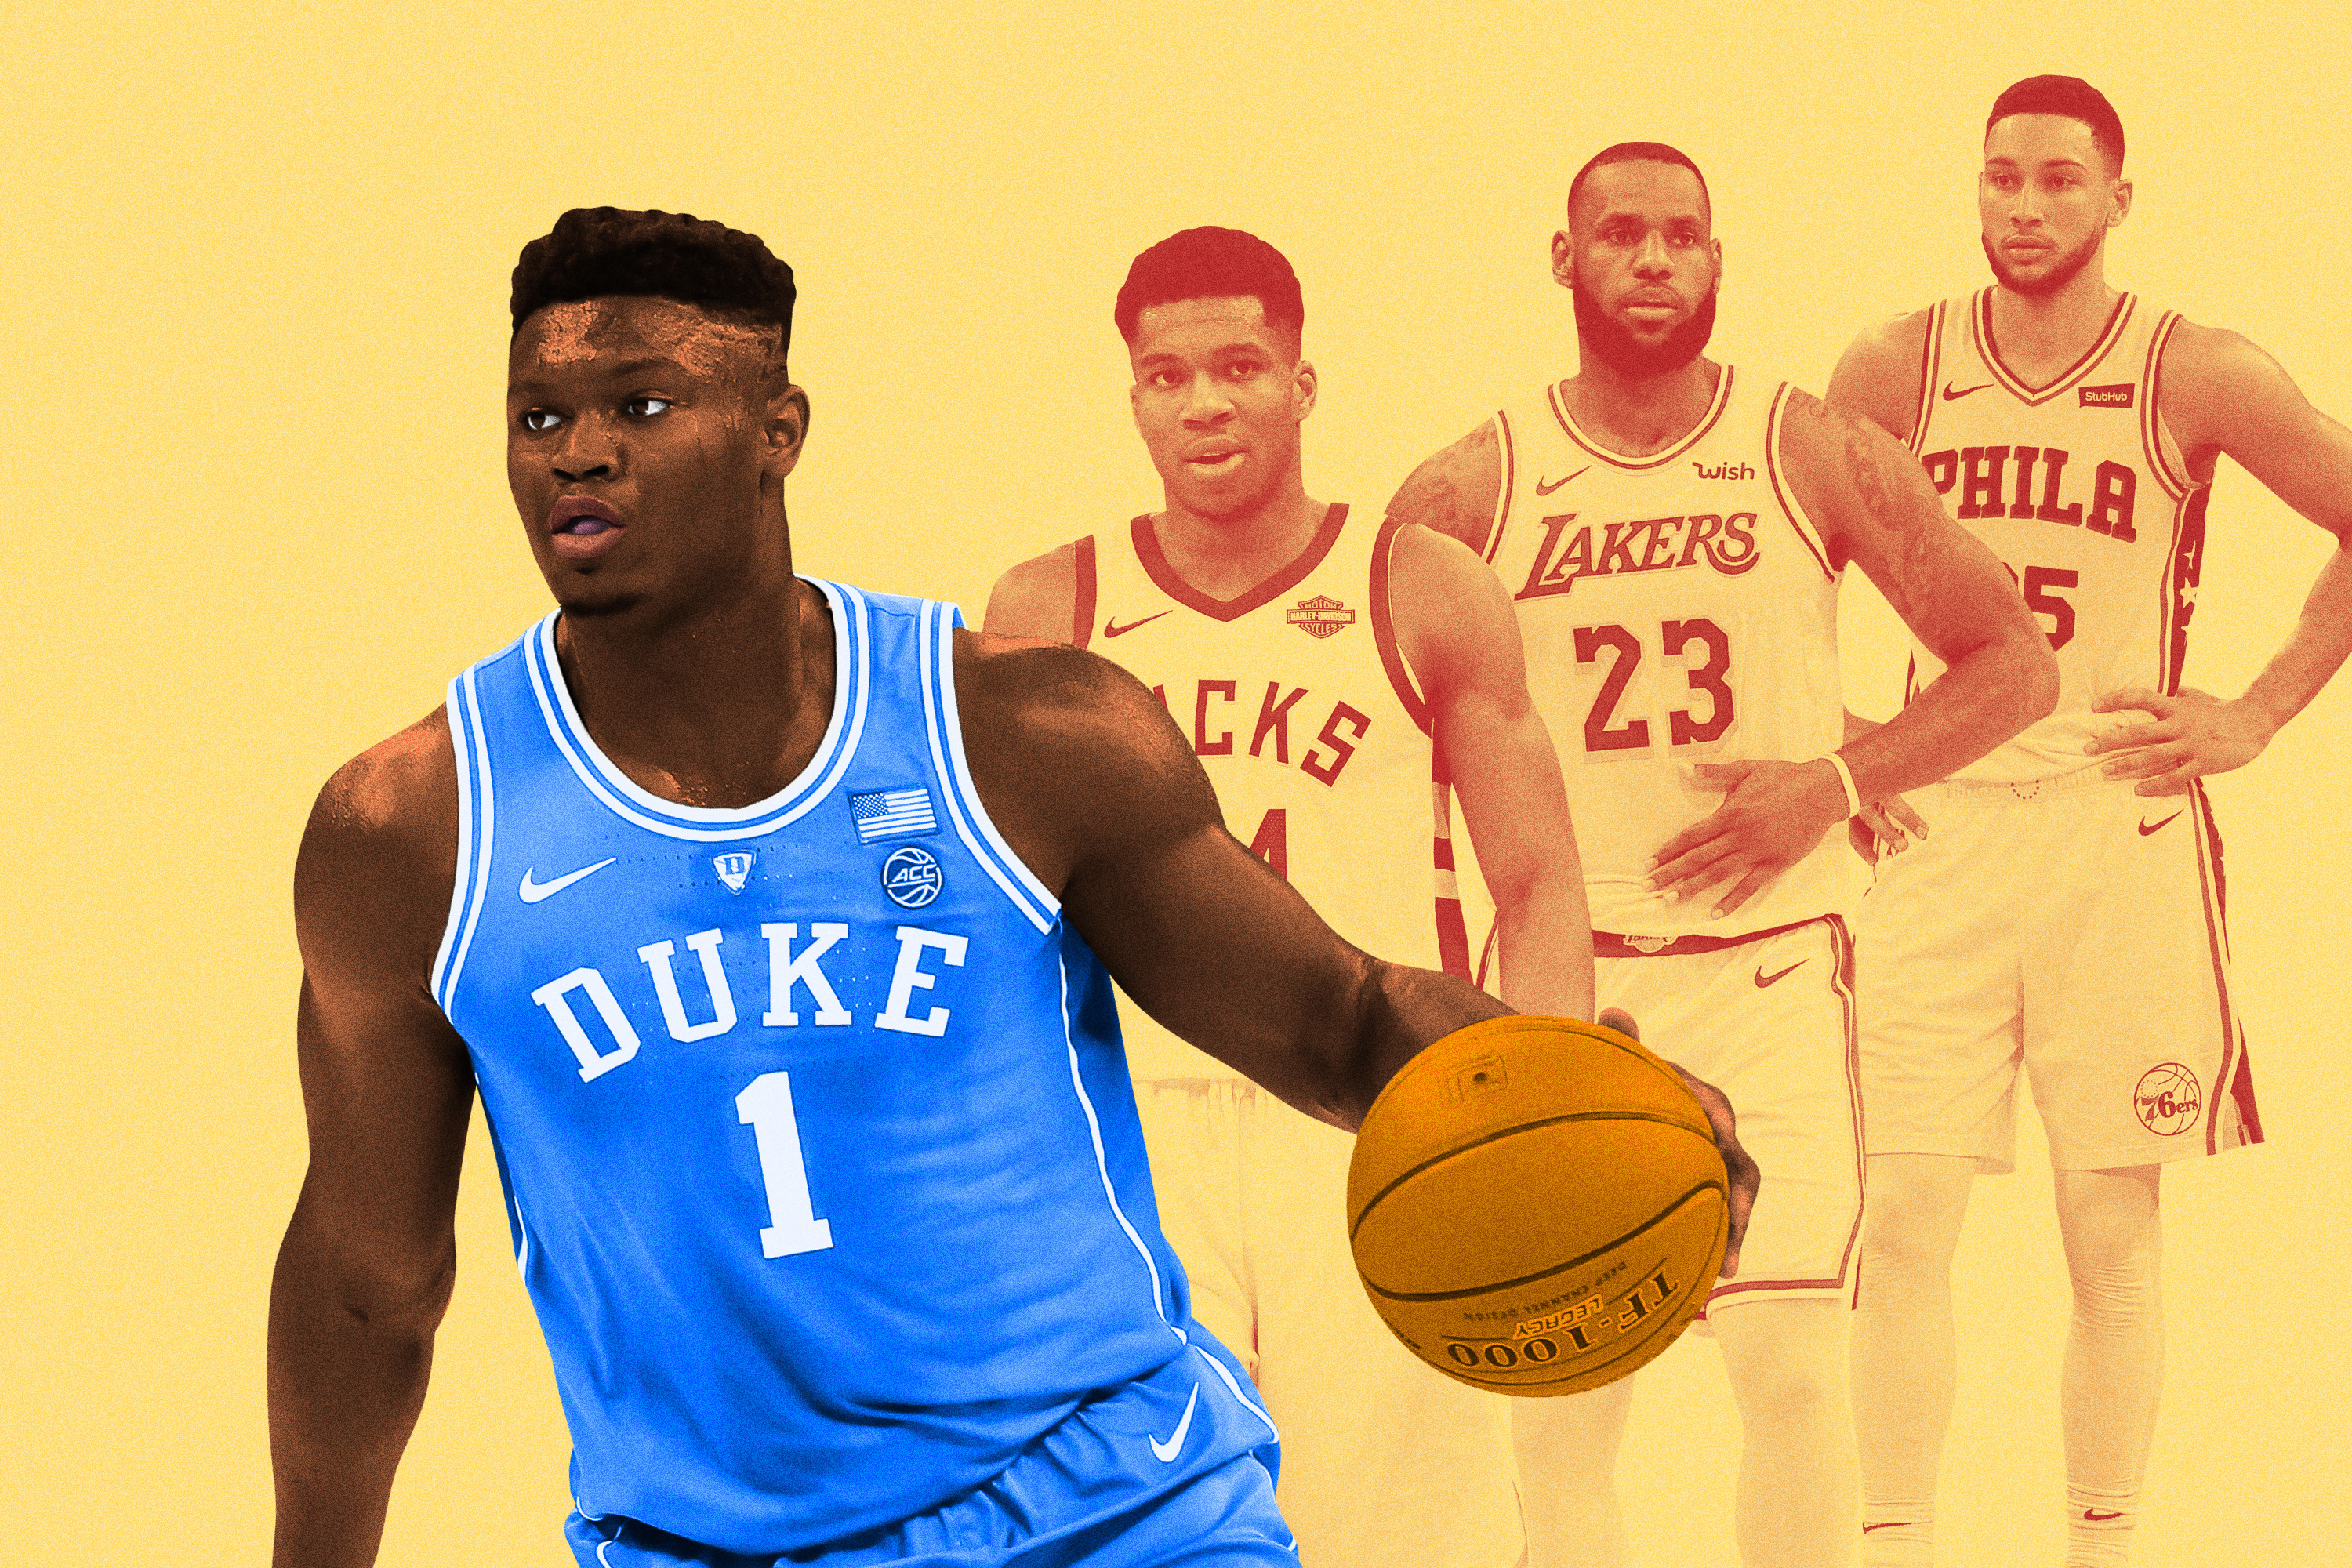 Duke's Zion Williamson Could Be the Next Great NBA Point